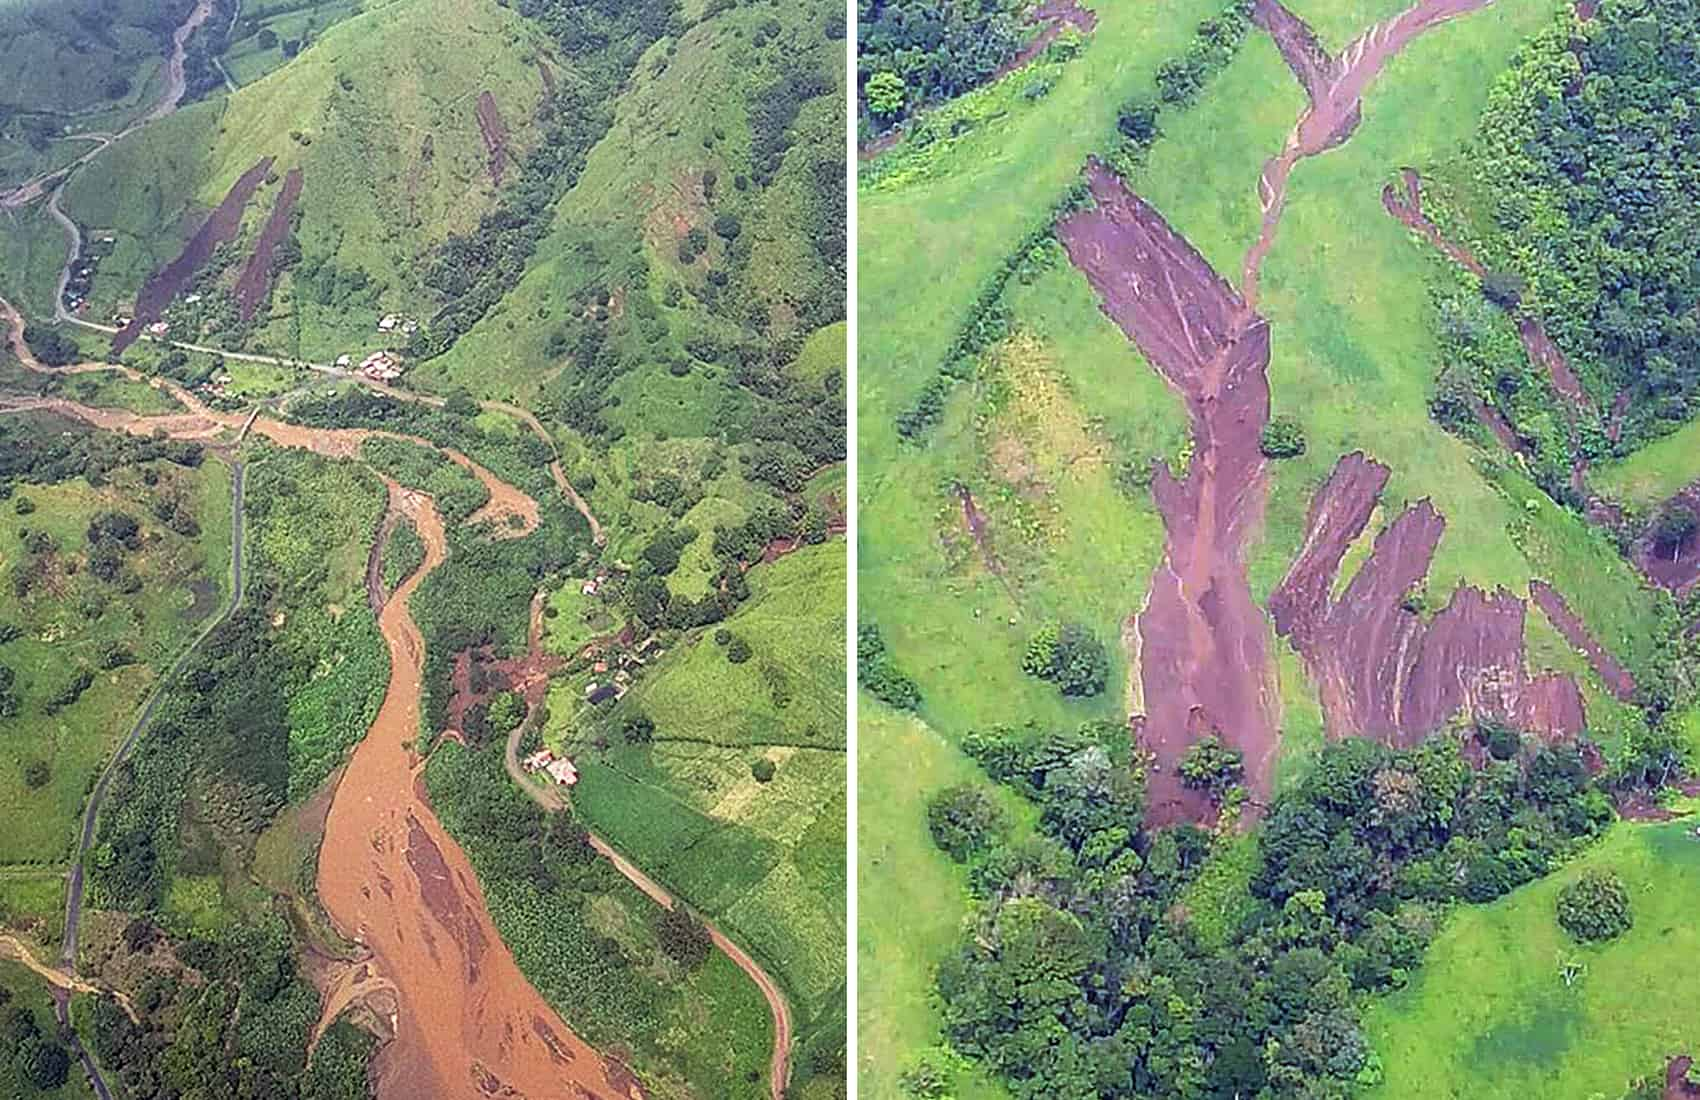 Landslides at Tilarán, Guanacaste. May 25, 2017